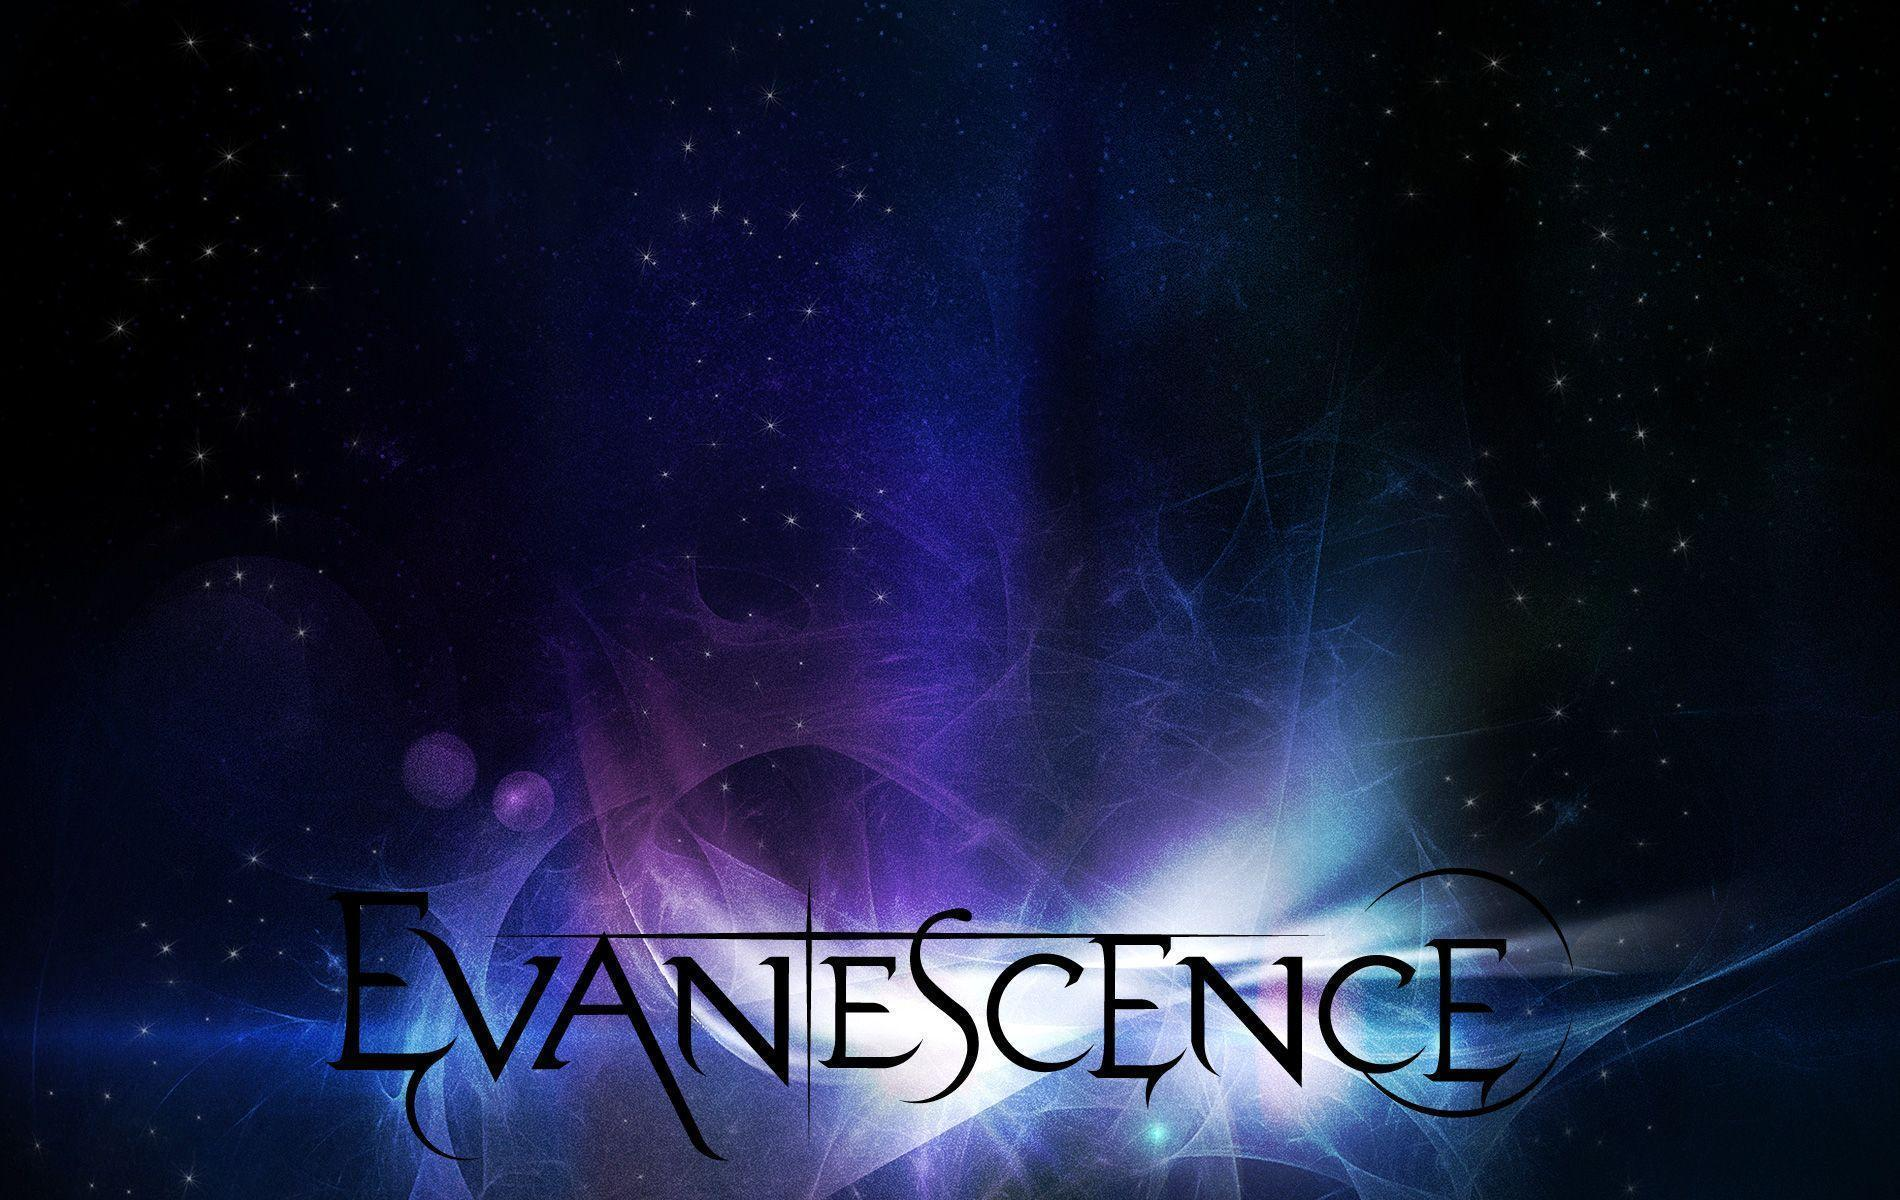 Evanescence Wallpapers 2017 1900x1200